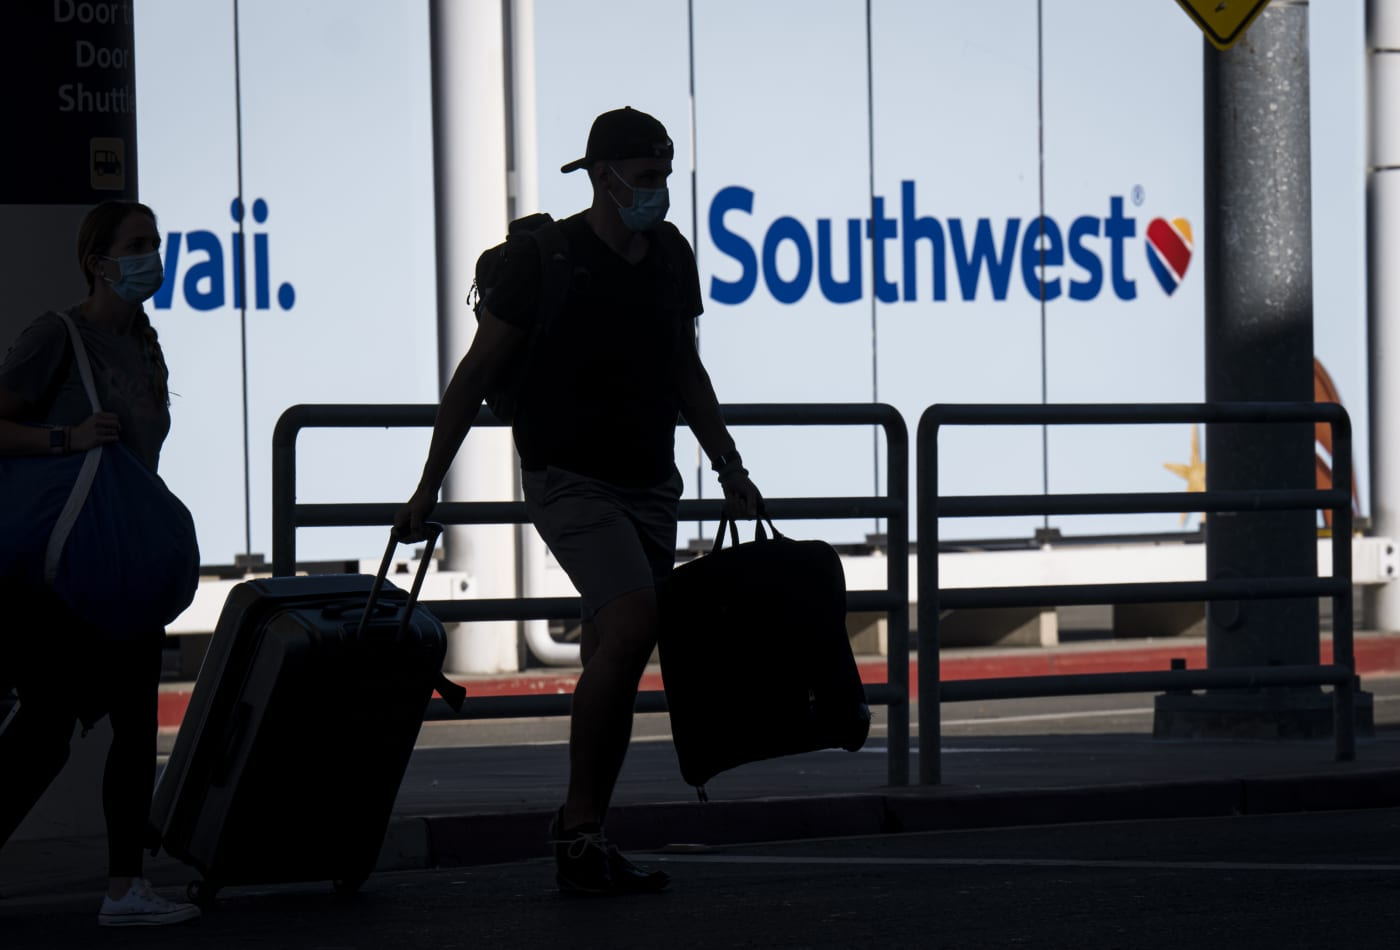 Travel demand won't rebound to pre-pandemic levels for three years: Analyst